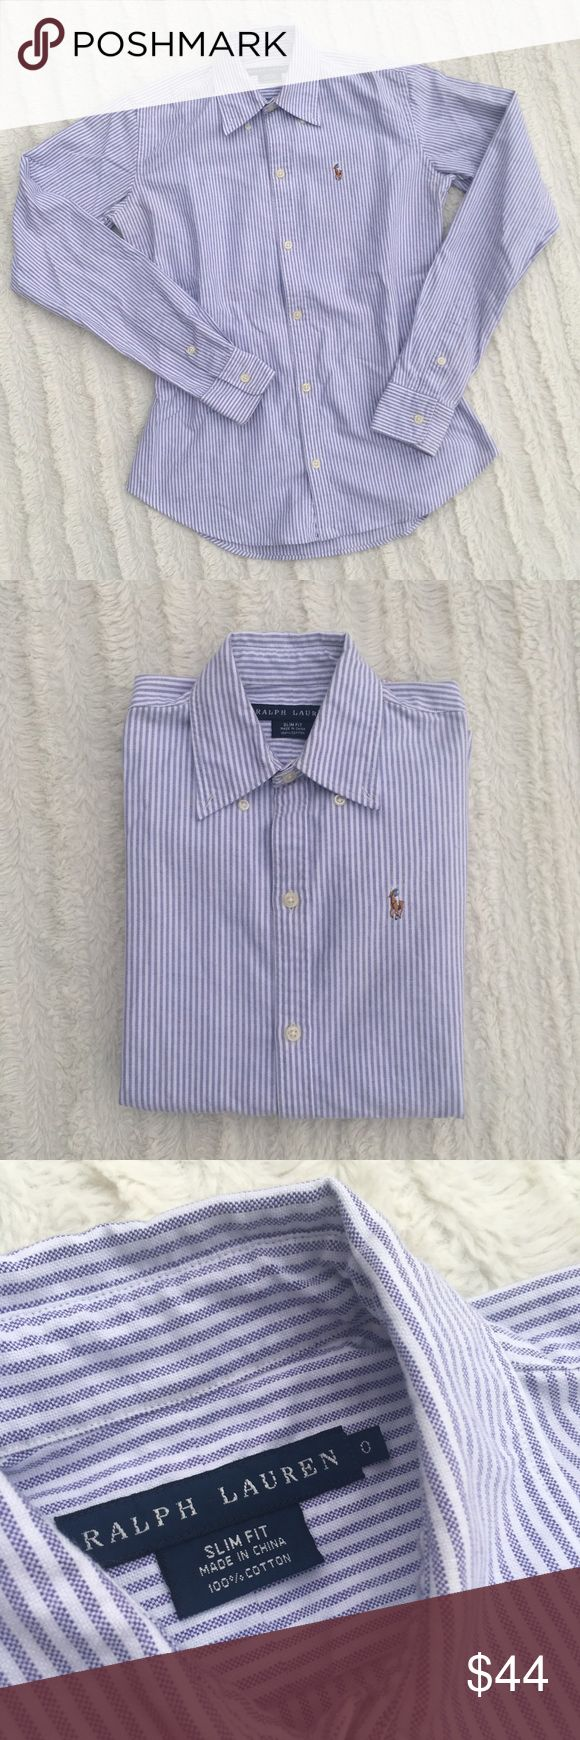 Ralph Lauren Slim Fit Button down size 0 Like New! Thank you in advance for your purchase, Happy Poshing! Ralph Lauren Tops Button Down Shirts